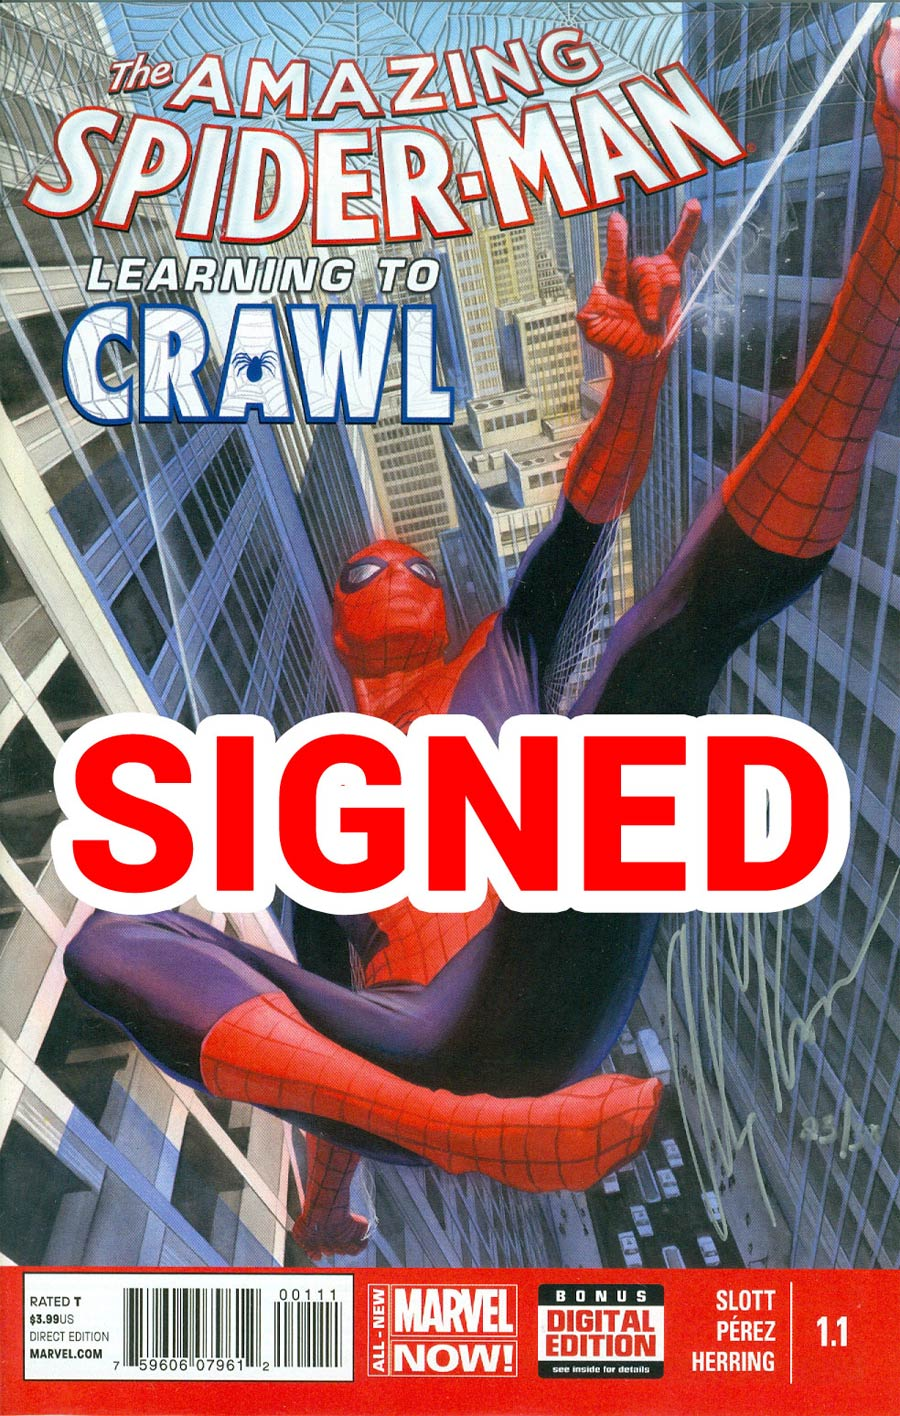 Amazing Spider-Man Vol 3 #1.1 Cover G DF Silver Signature Series Signed By Alex Ross